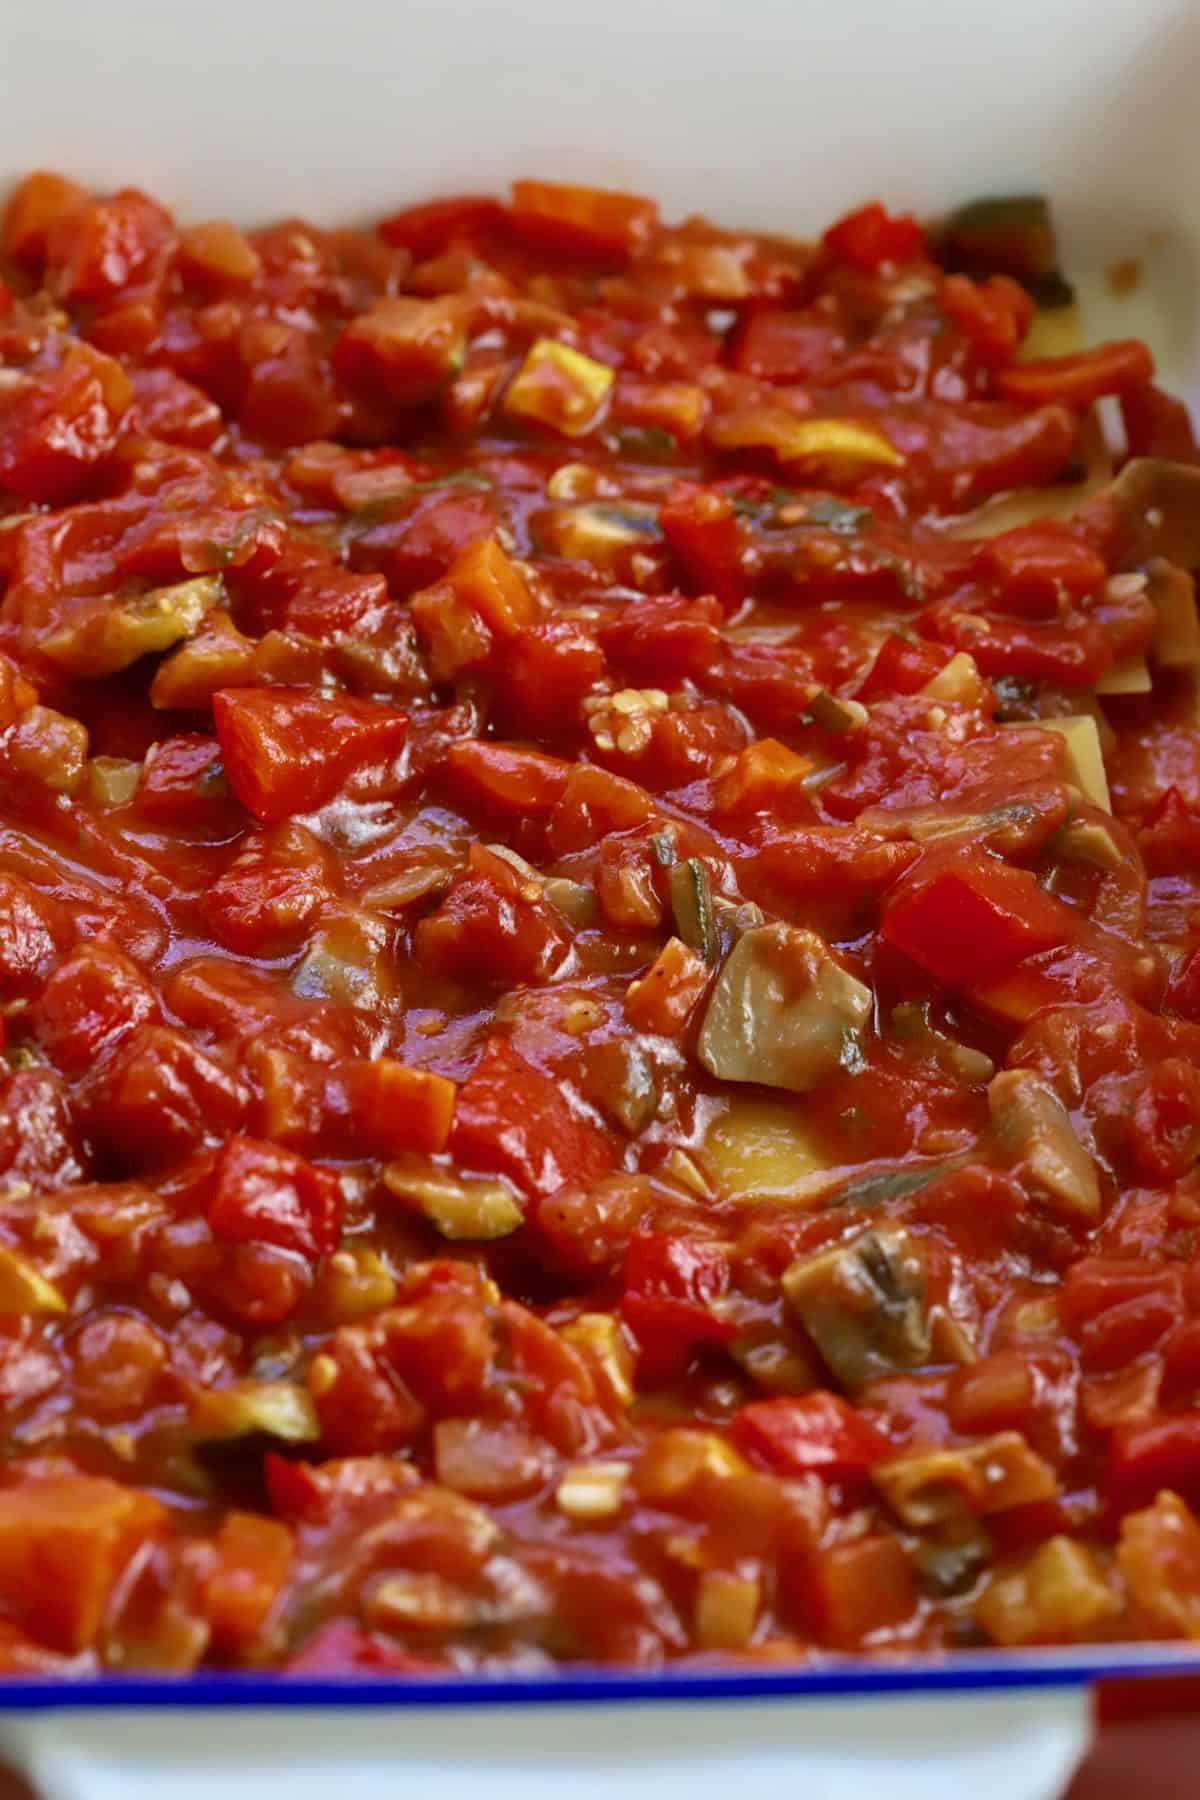 Tomato sauce with vegetables covering lasagna noodles in a baking dish.